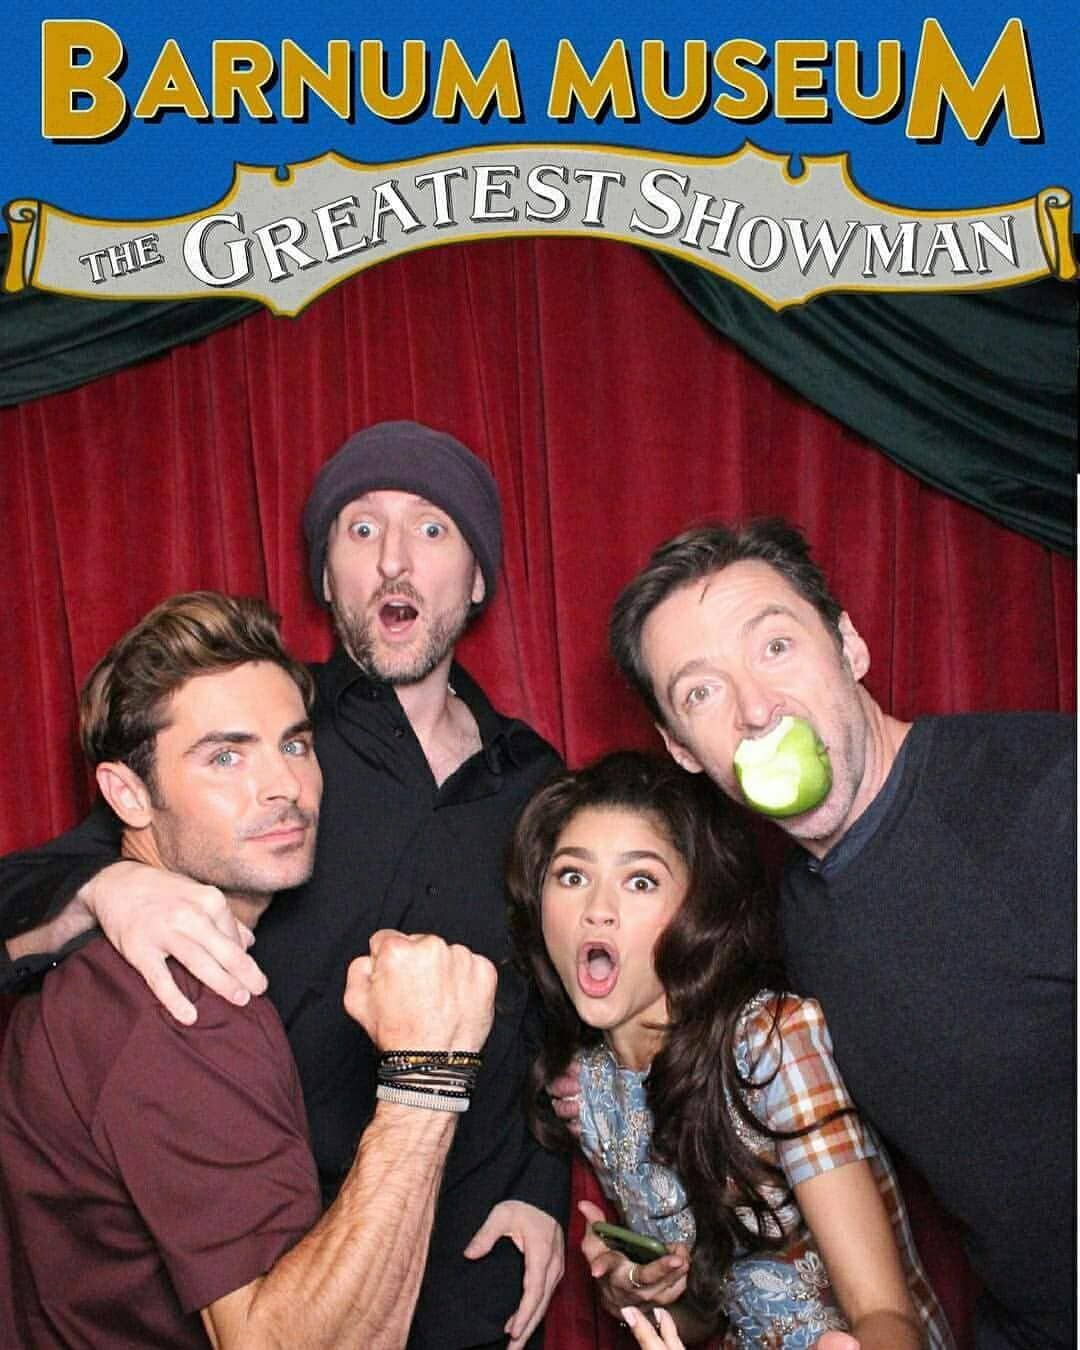 Hugh. What the heck with the apple